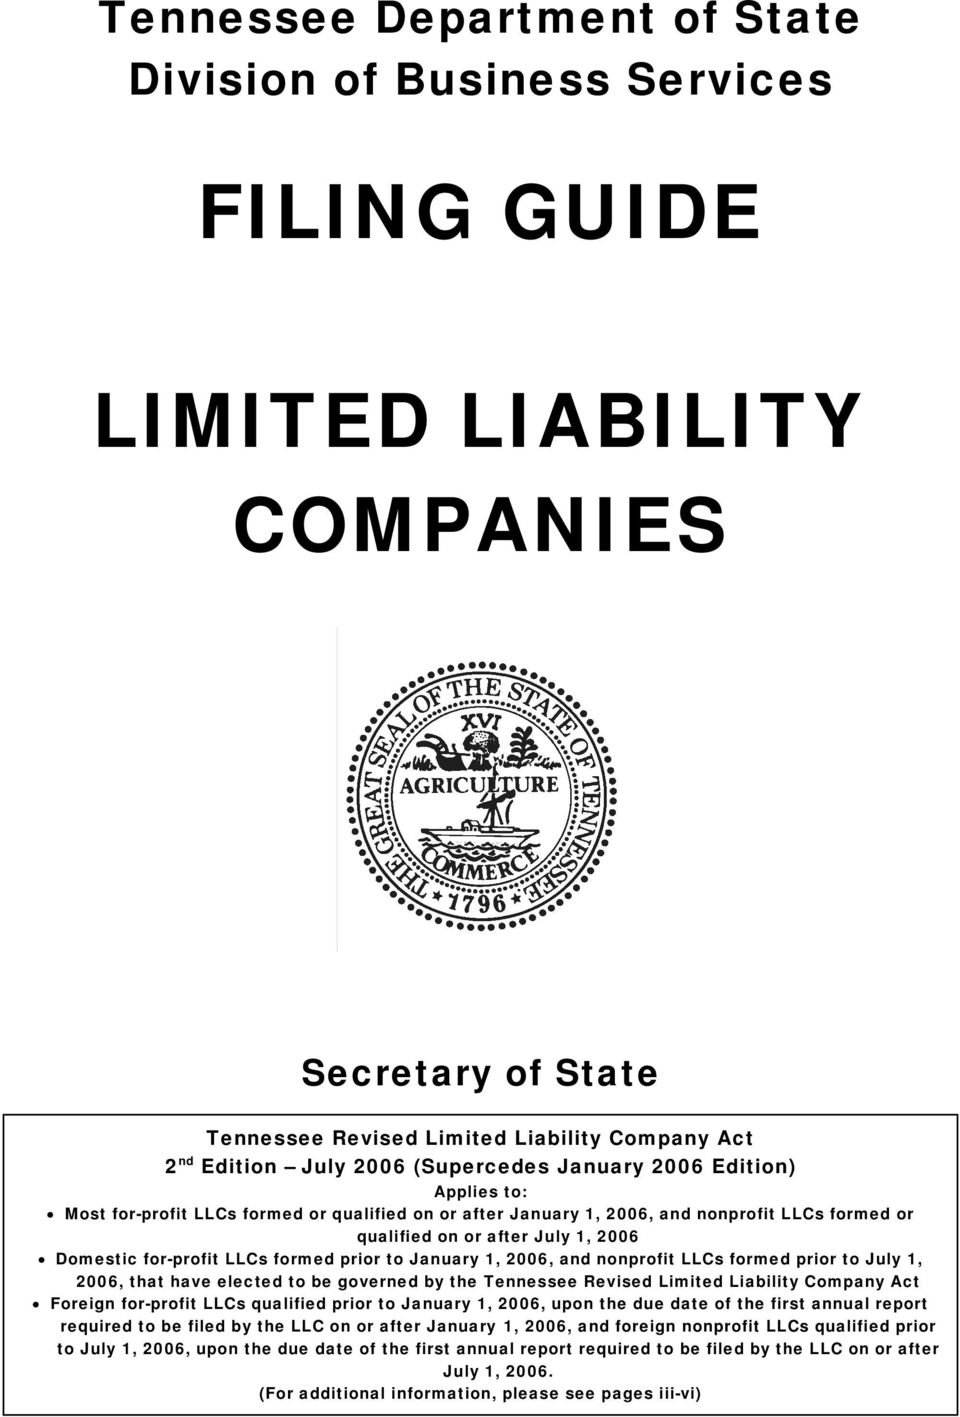 LLCs formed prior to January 1, 2006, and nonprofit LLCs formed prior to July 1, 2006, that have elected to be governed by the Tennessee Revised Limited Liability Company Act Foreign for-profit LLCs